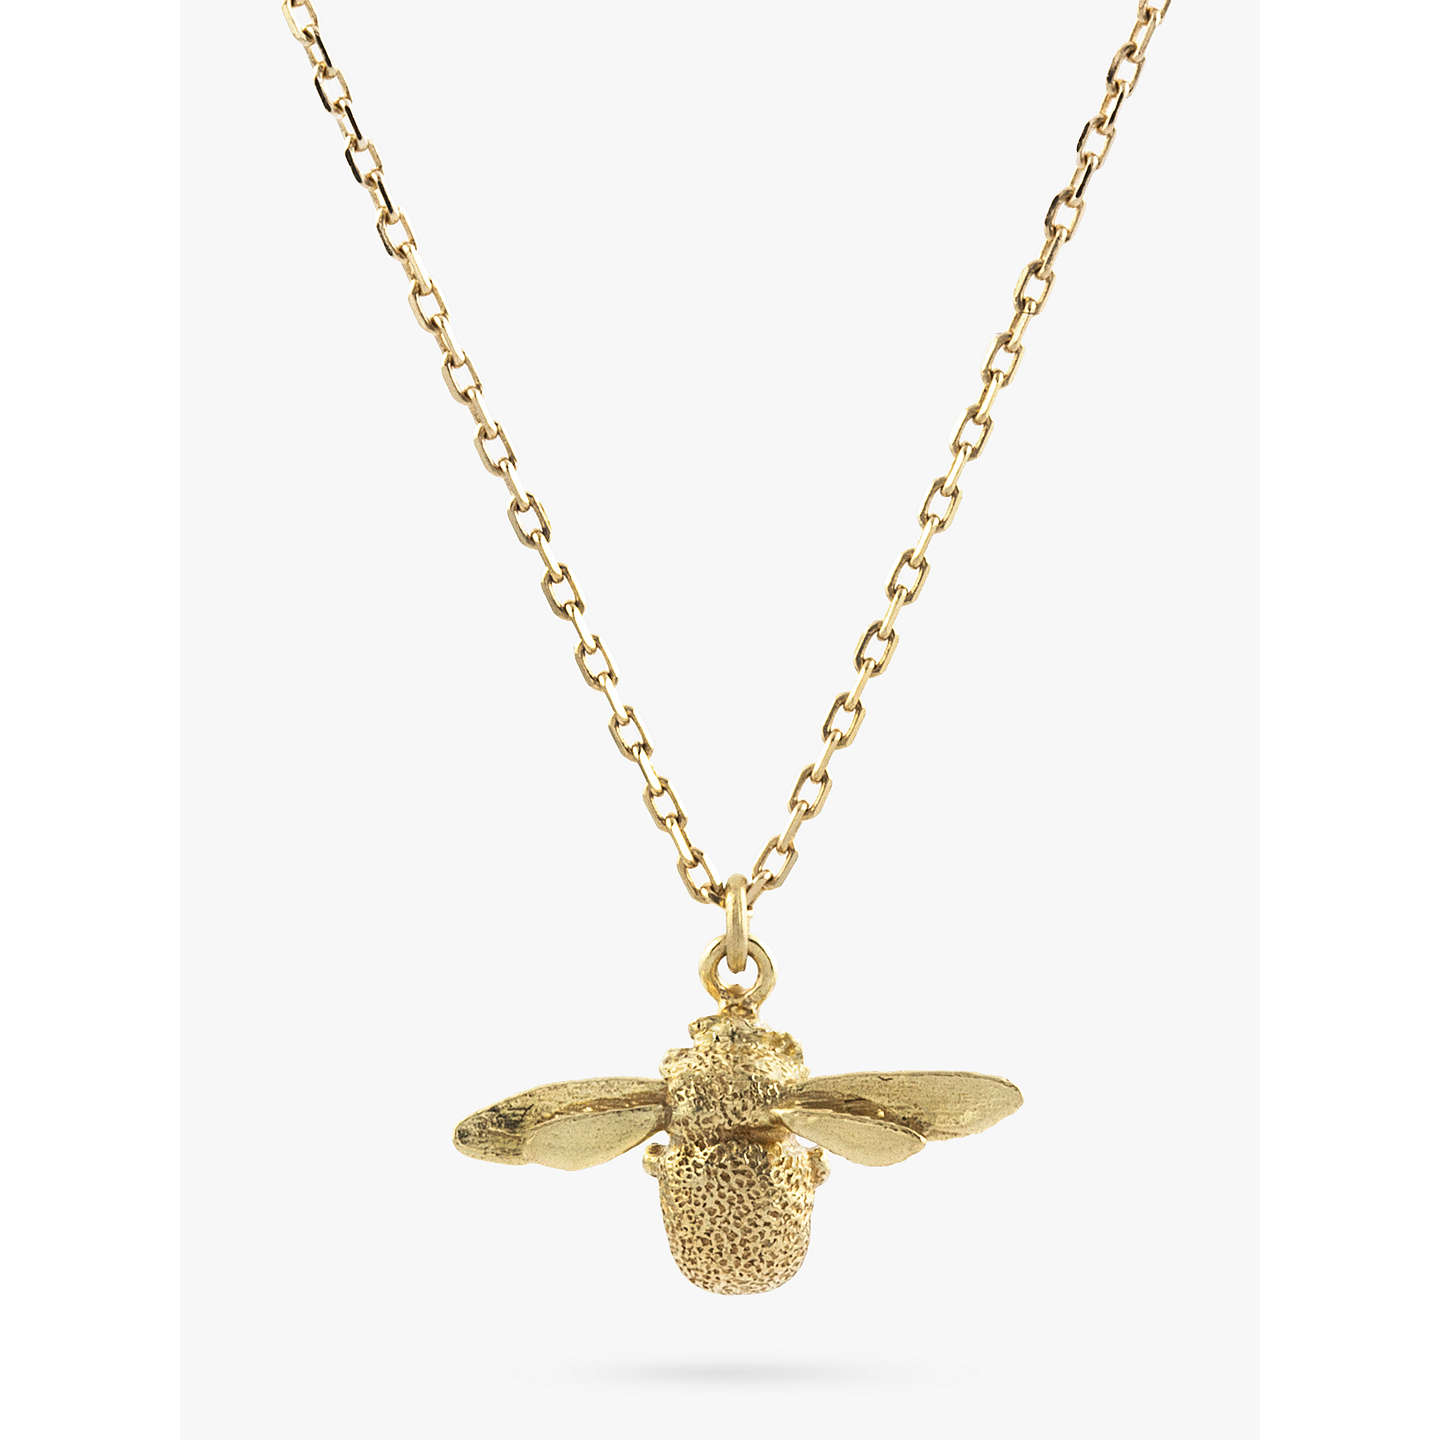 deborahblythjewellery original blyth deborah pendant notonthehighstreet bee necklace product bumble jewellery gold com by